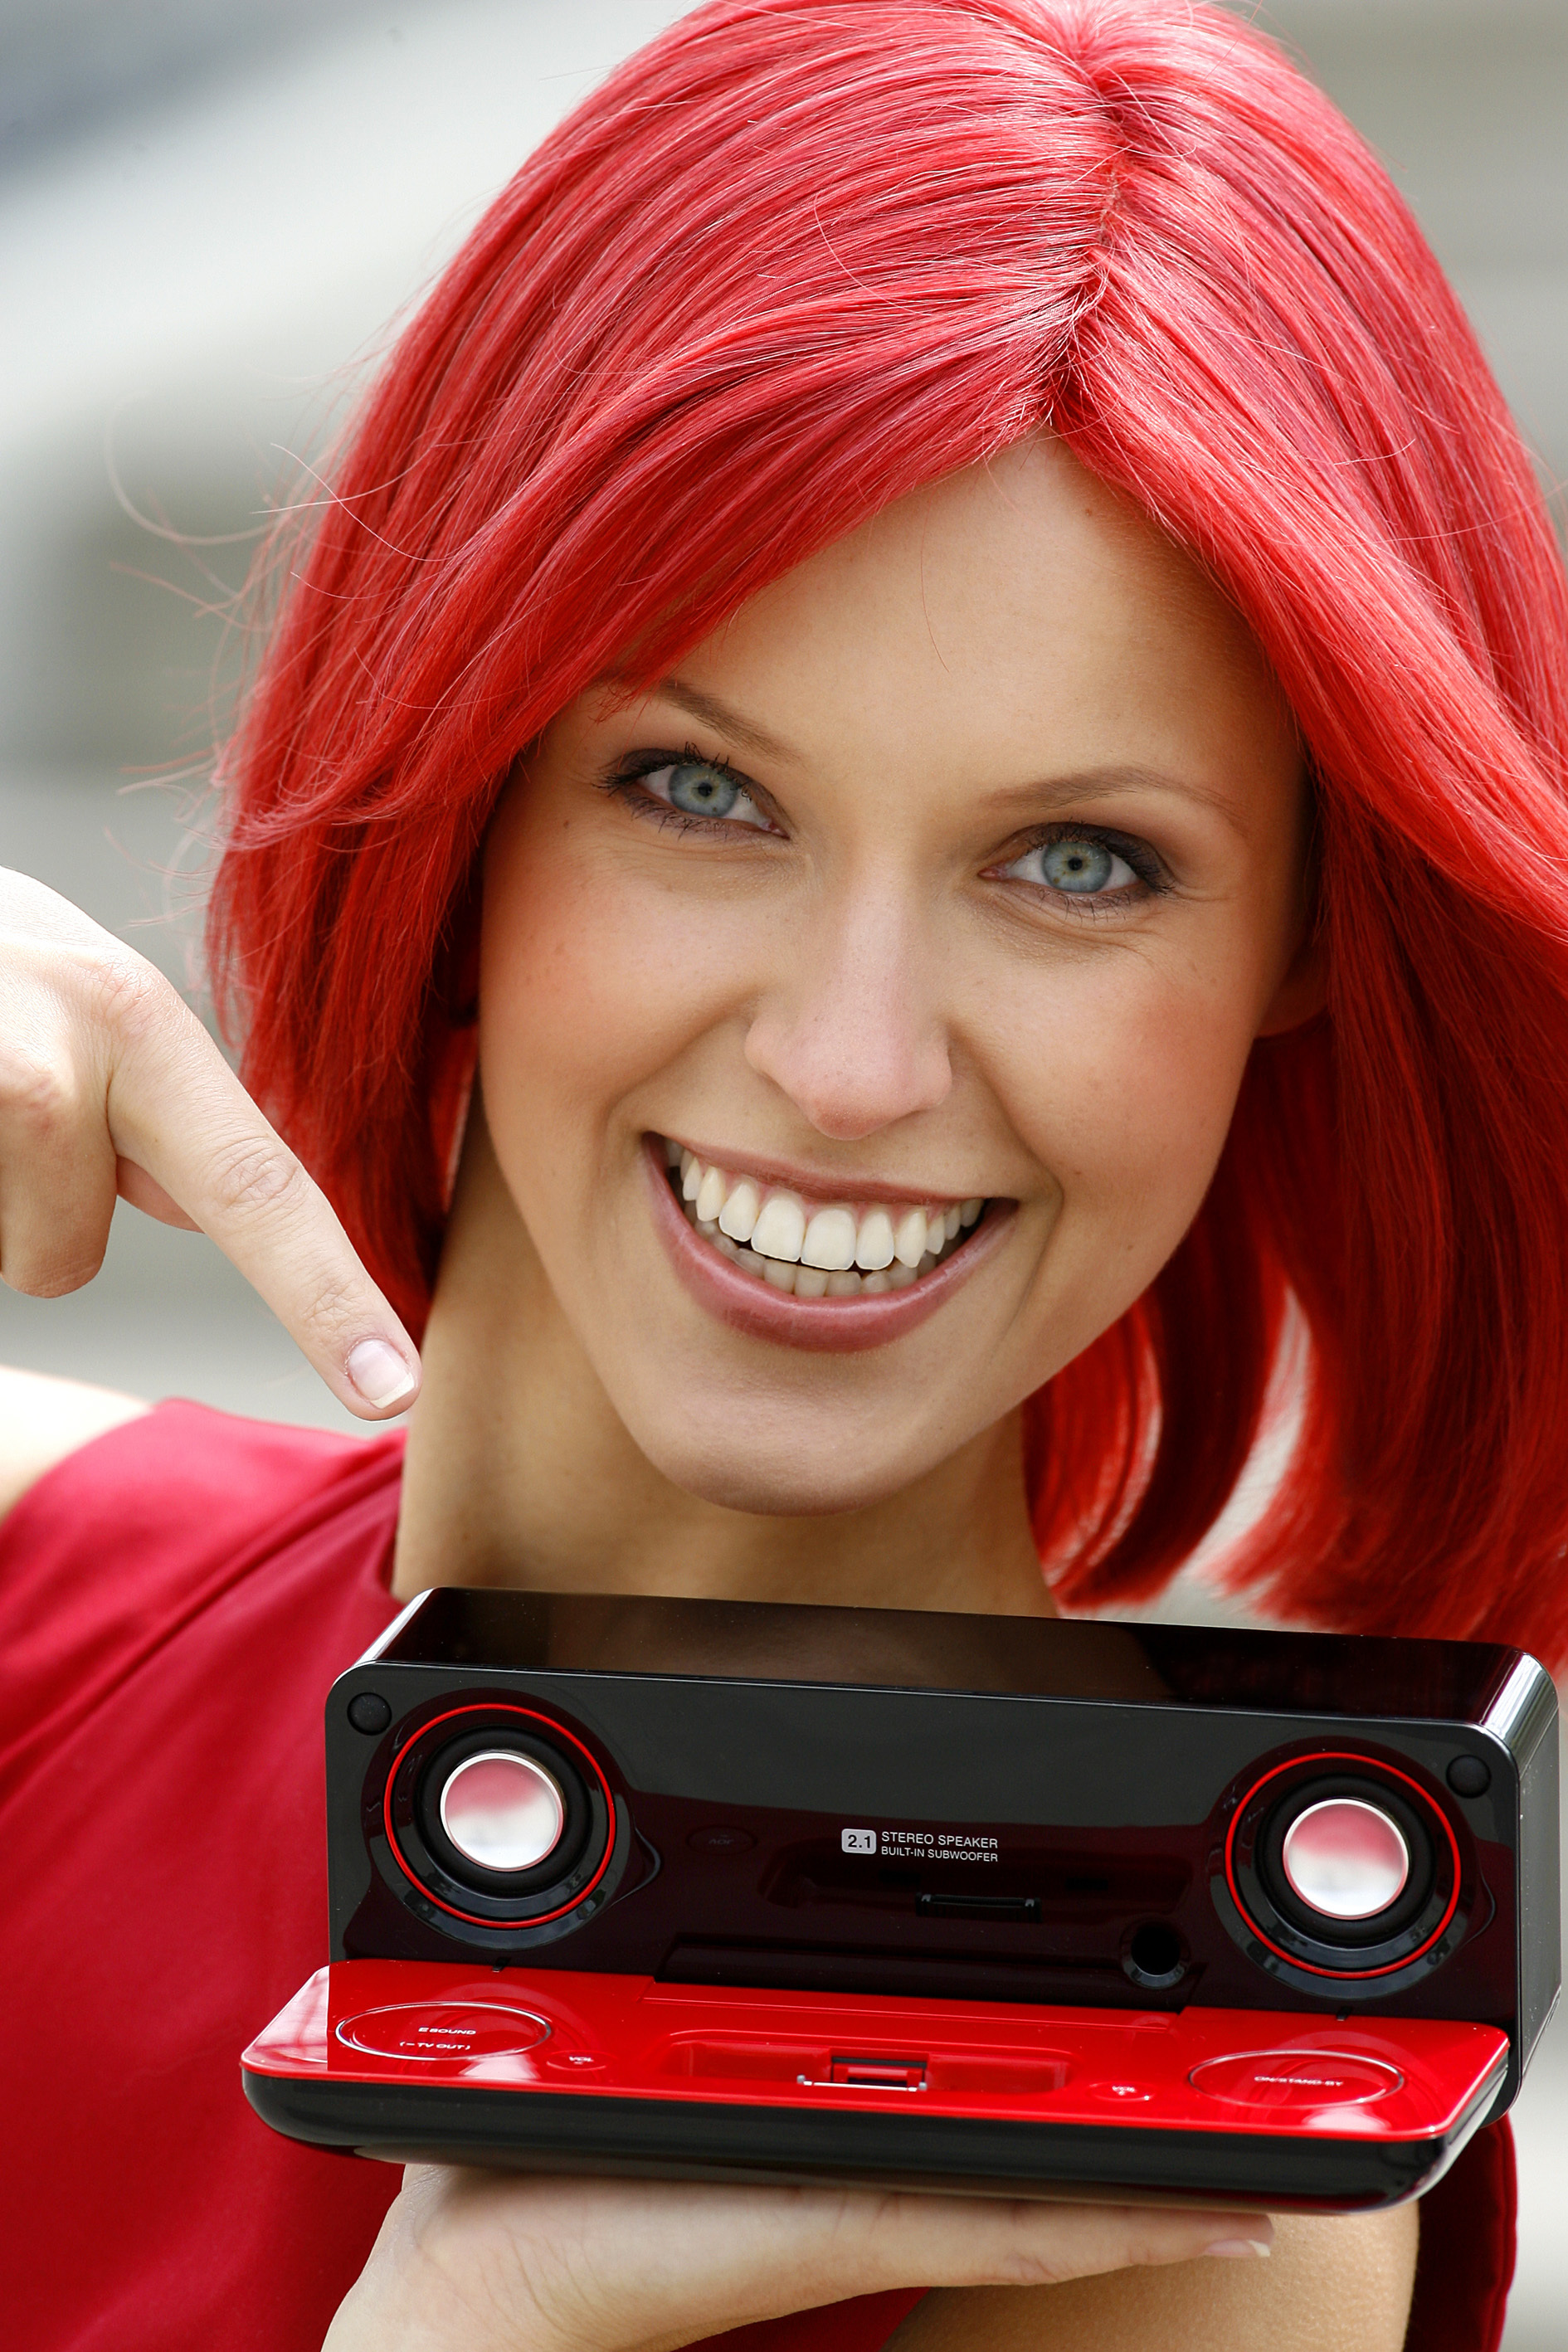 woman red redheads Radio HD Wallpaper